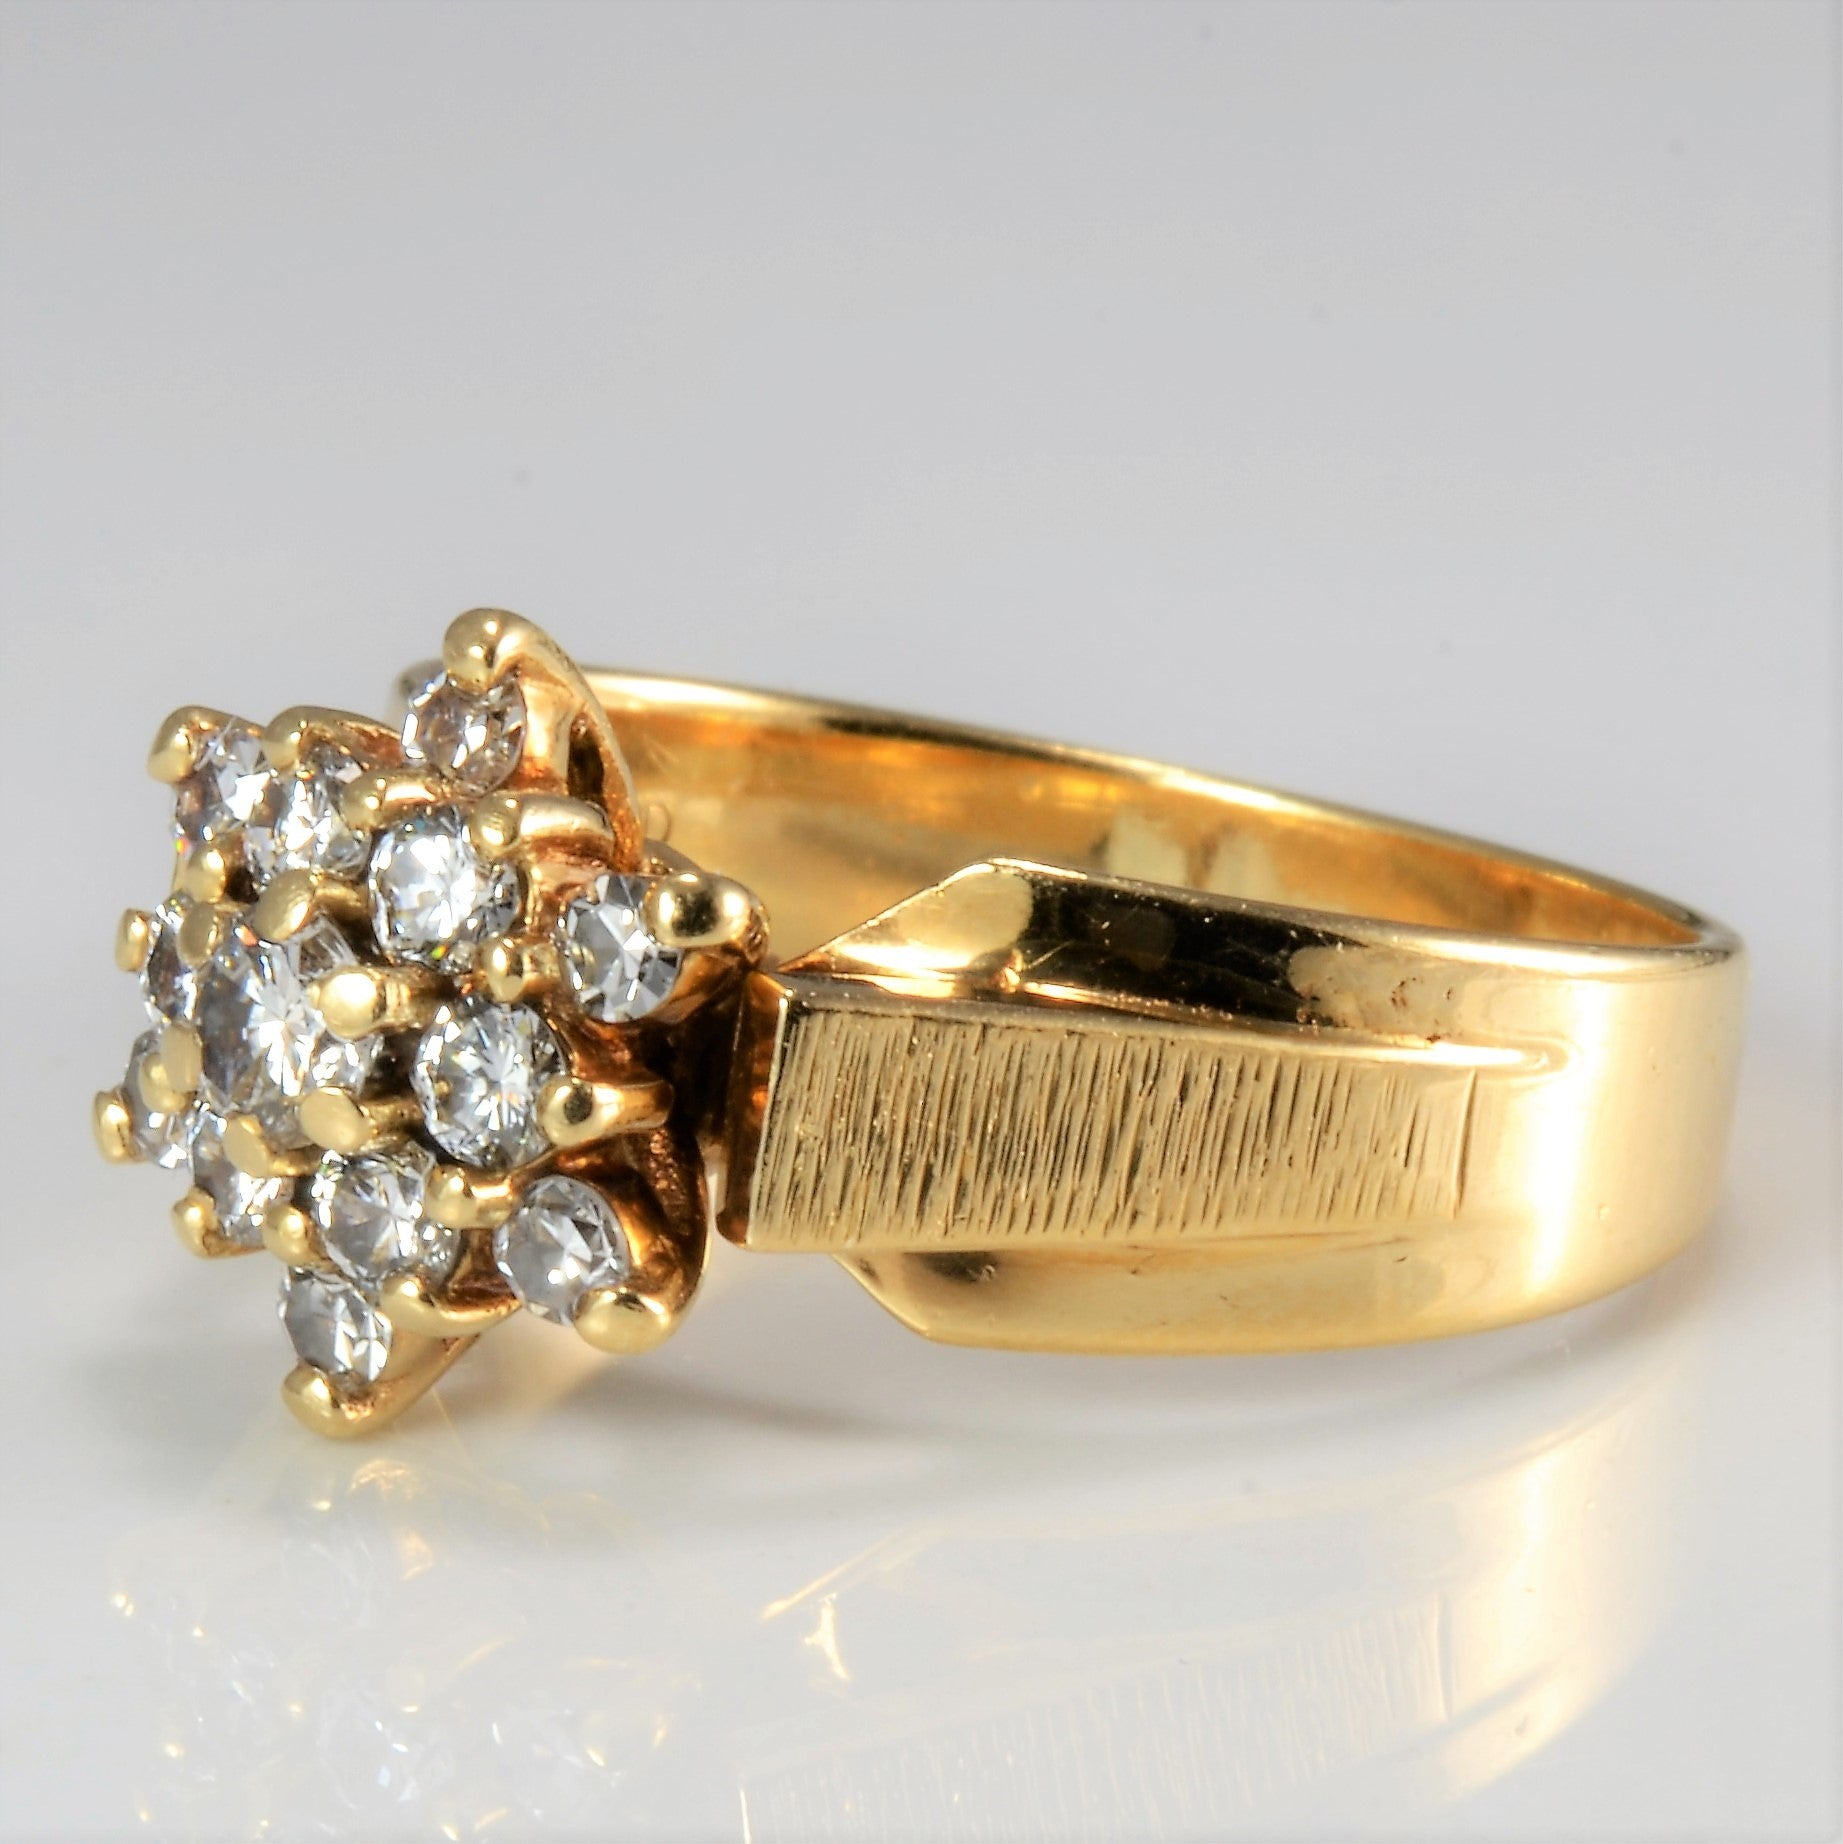 Tapered Cluster Diamond Ring | 0.42 ctw, SZ 6.75 |